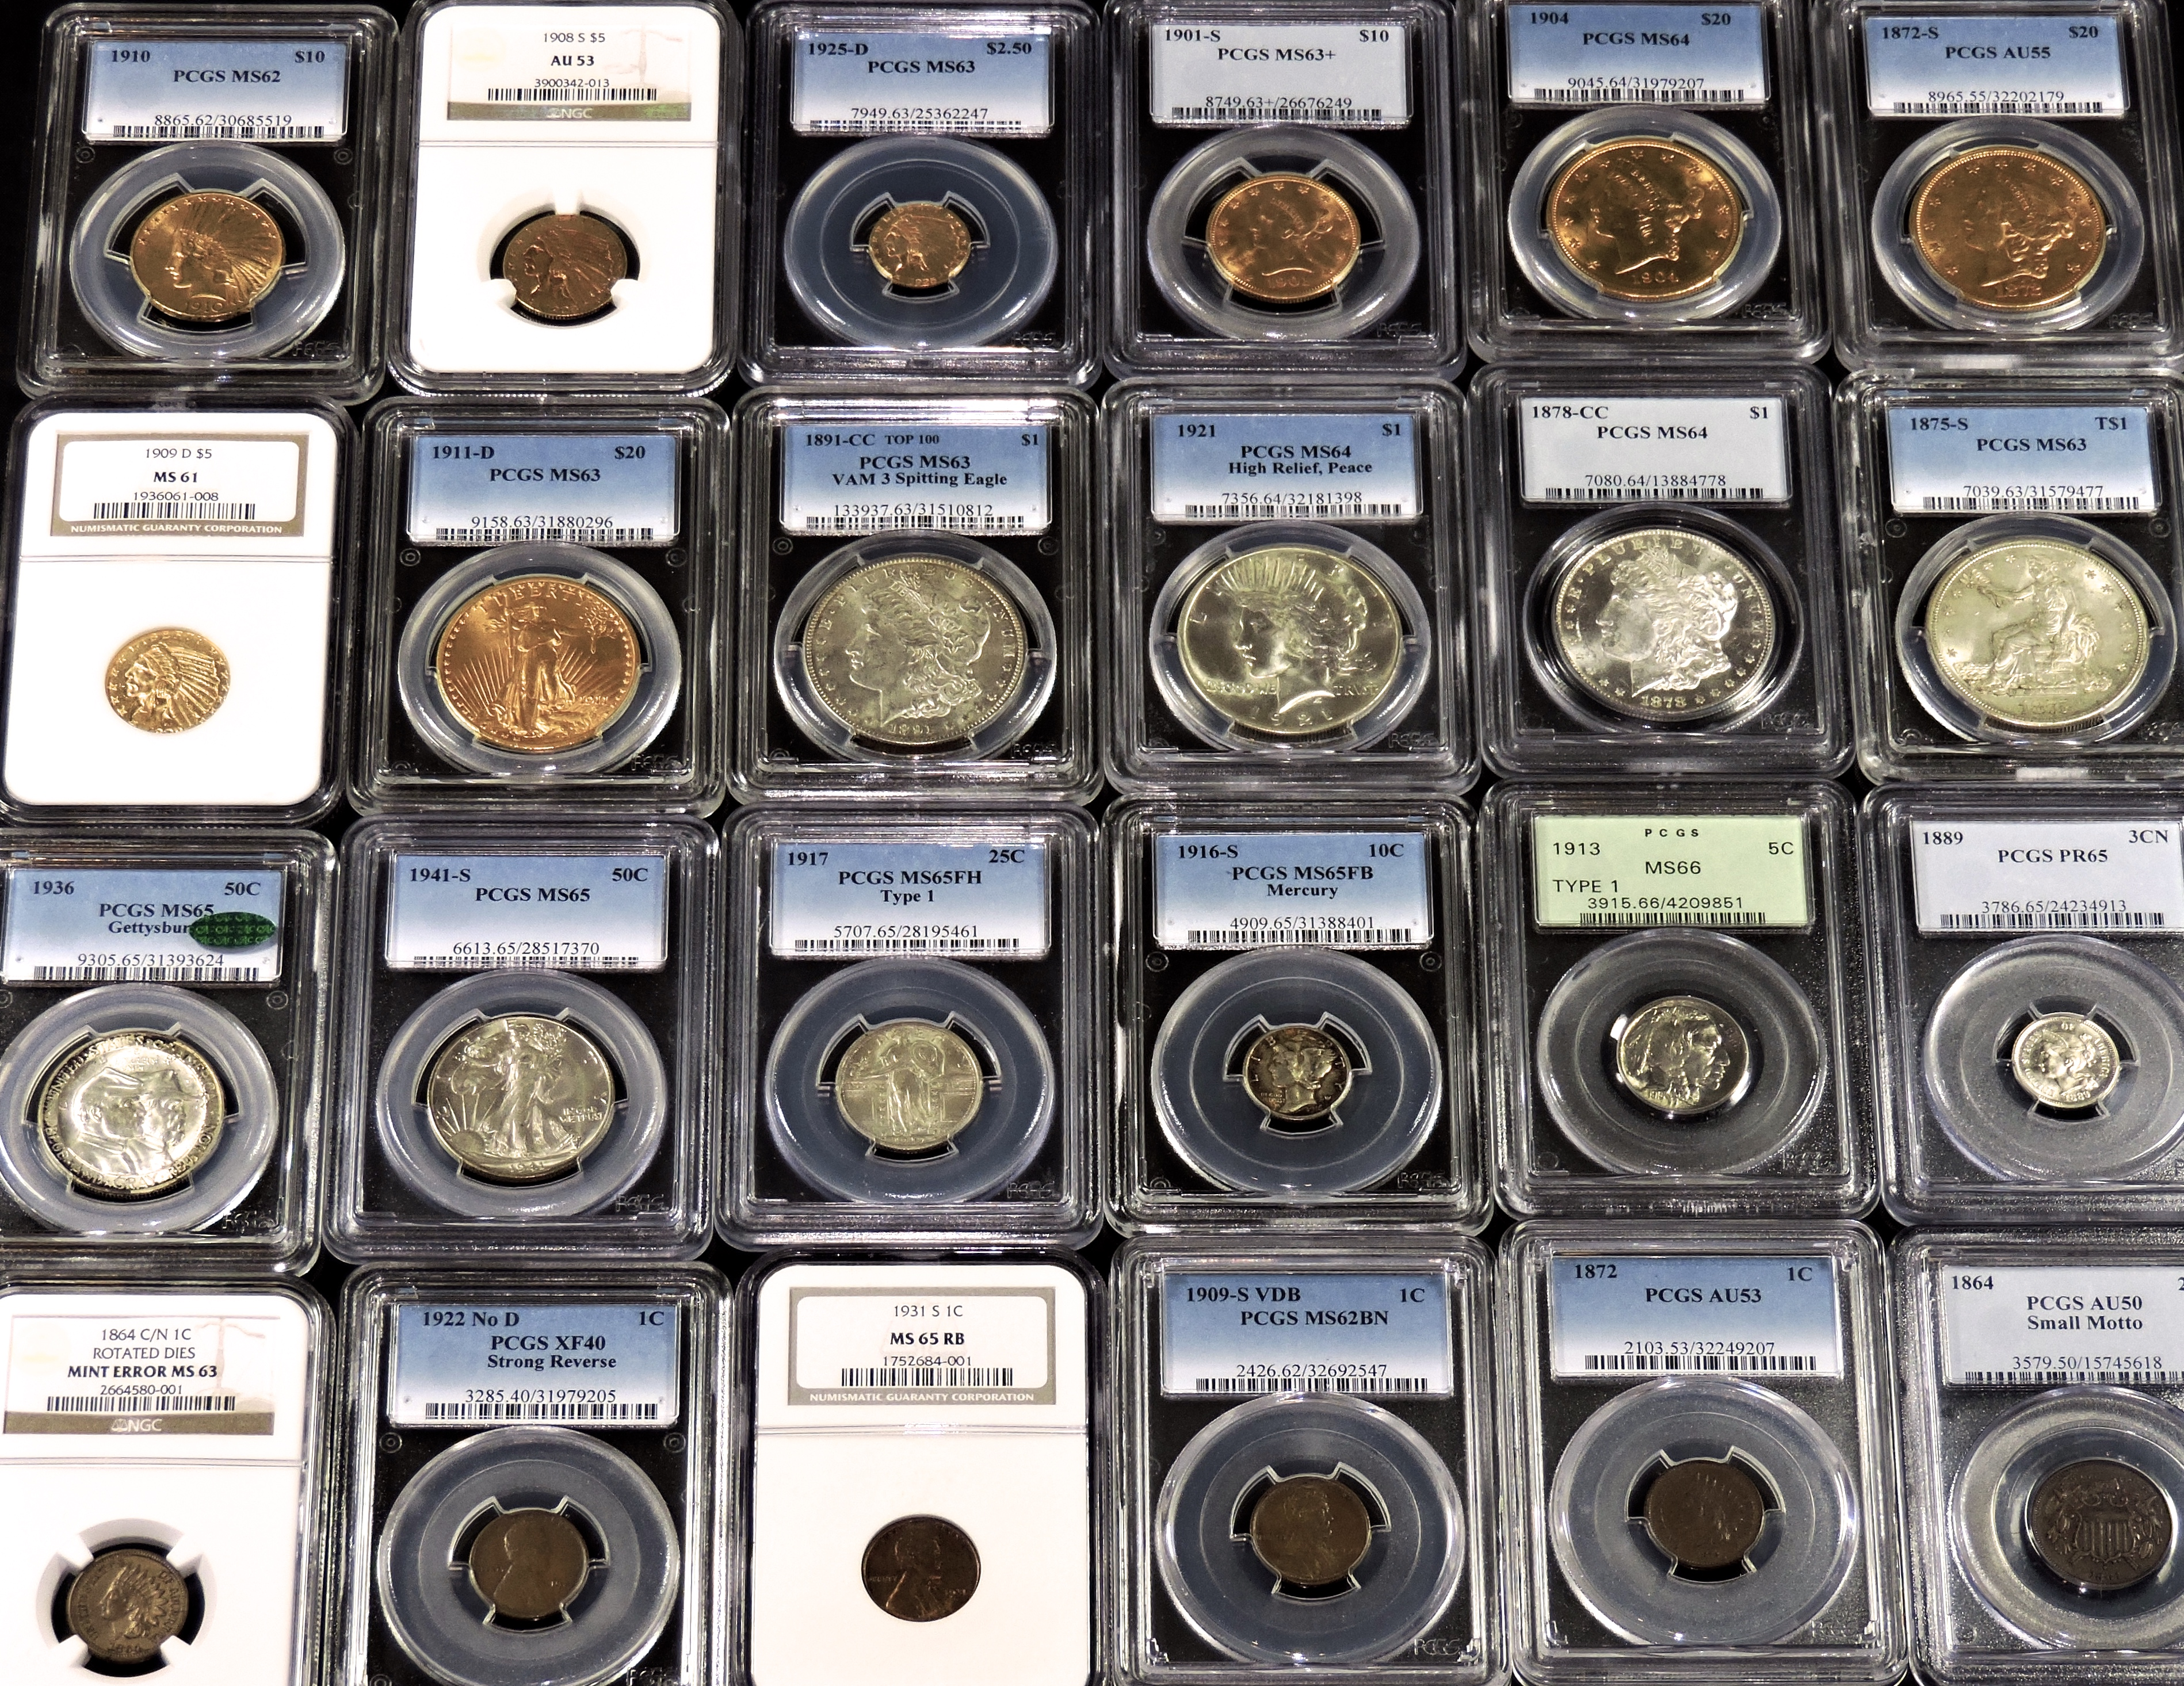 AMERICANA COLLECTORS KANSAS CITY'S GOLD & COIN EXPERTS